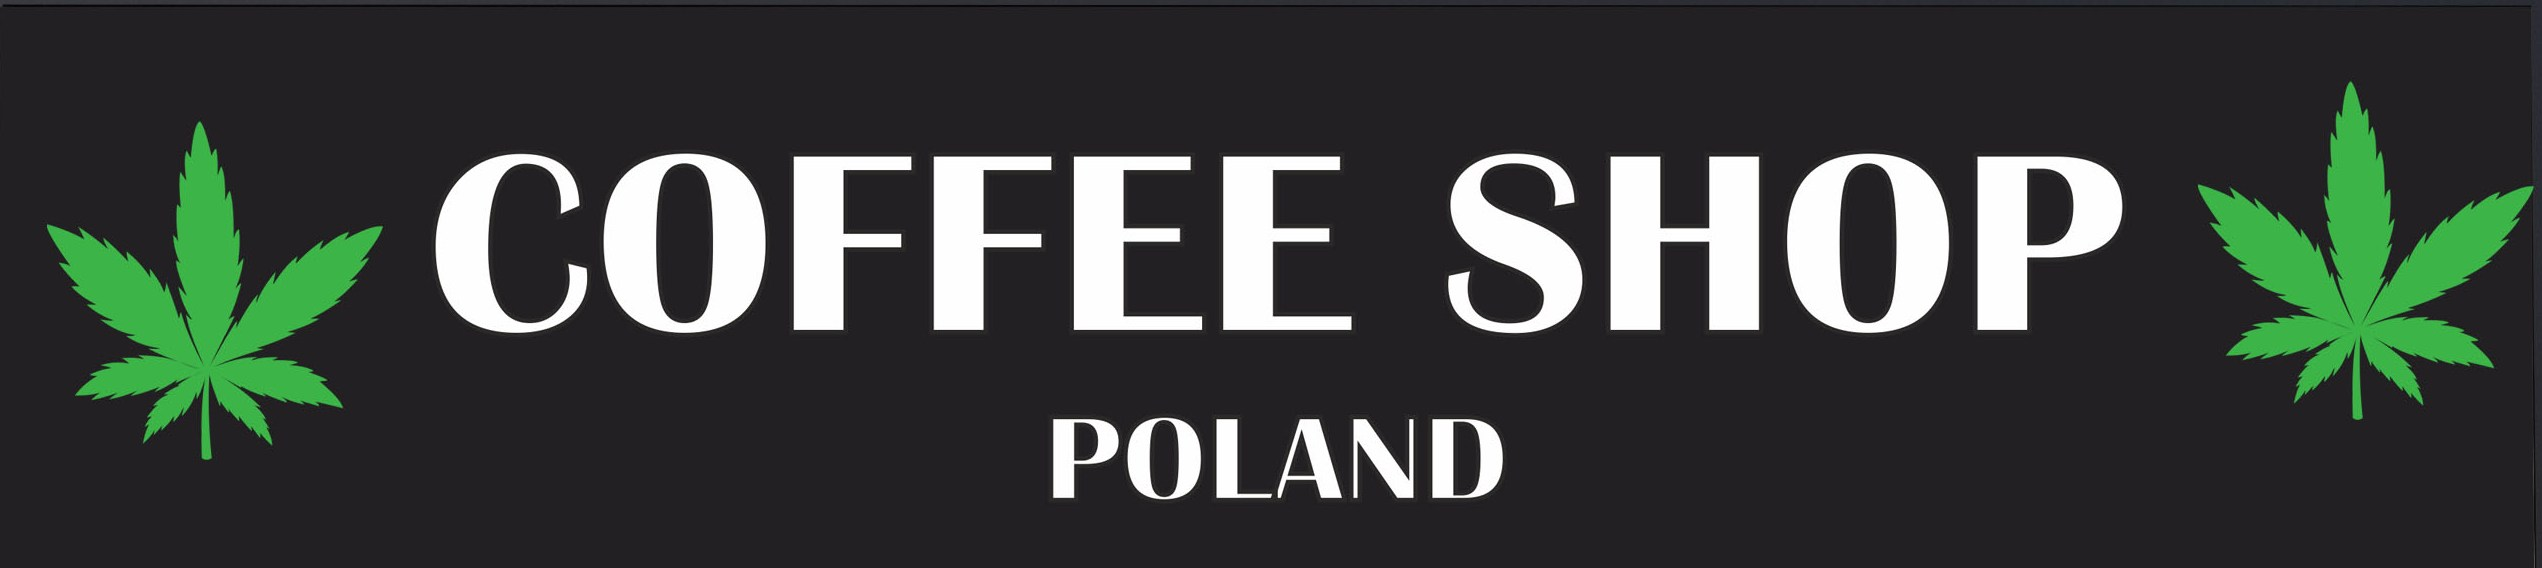 Coffee Shop Poland